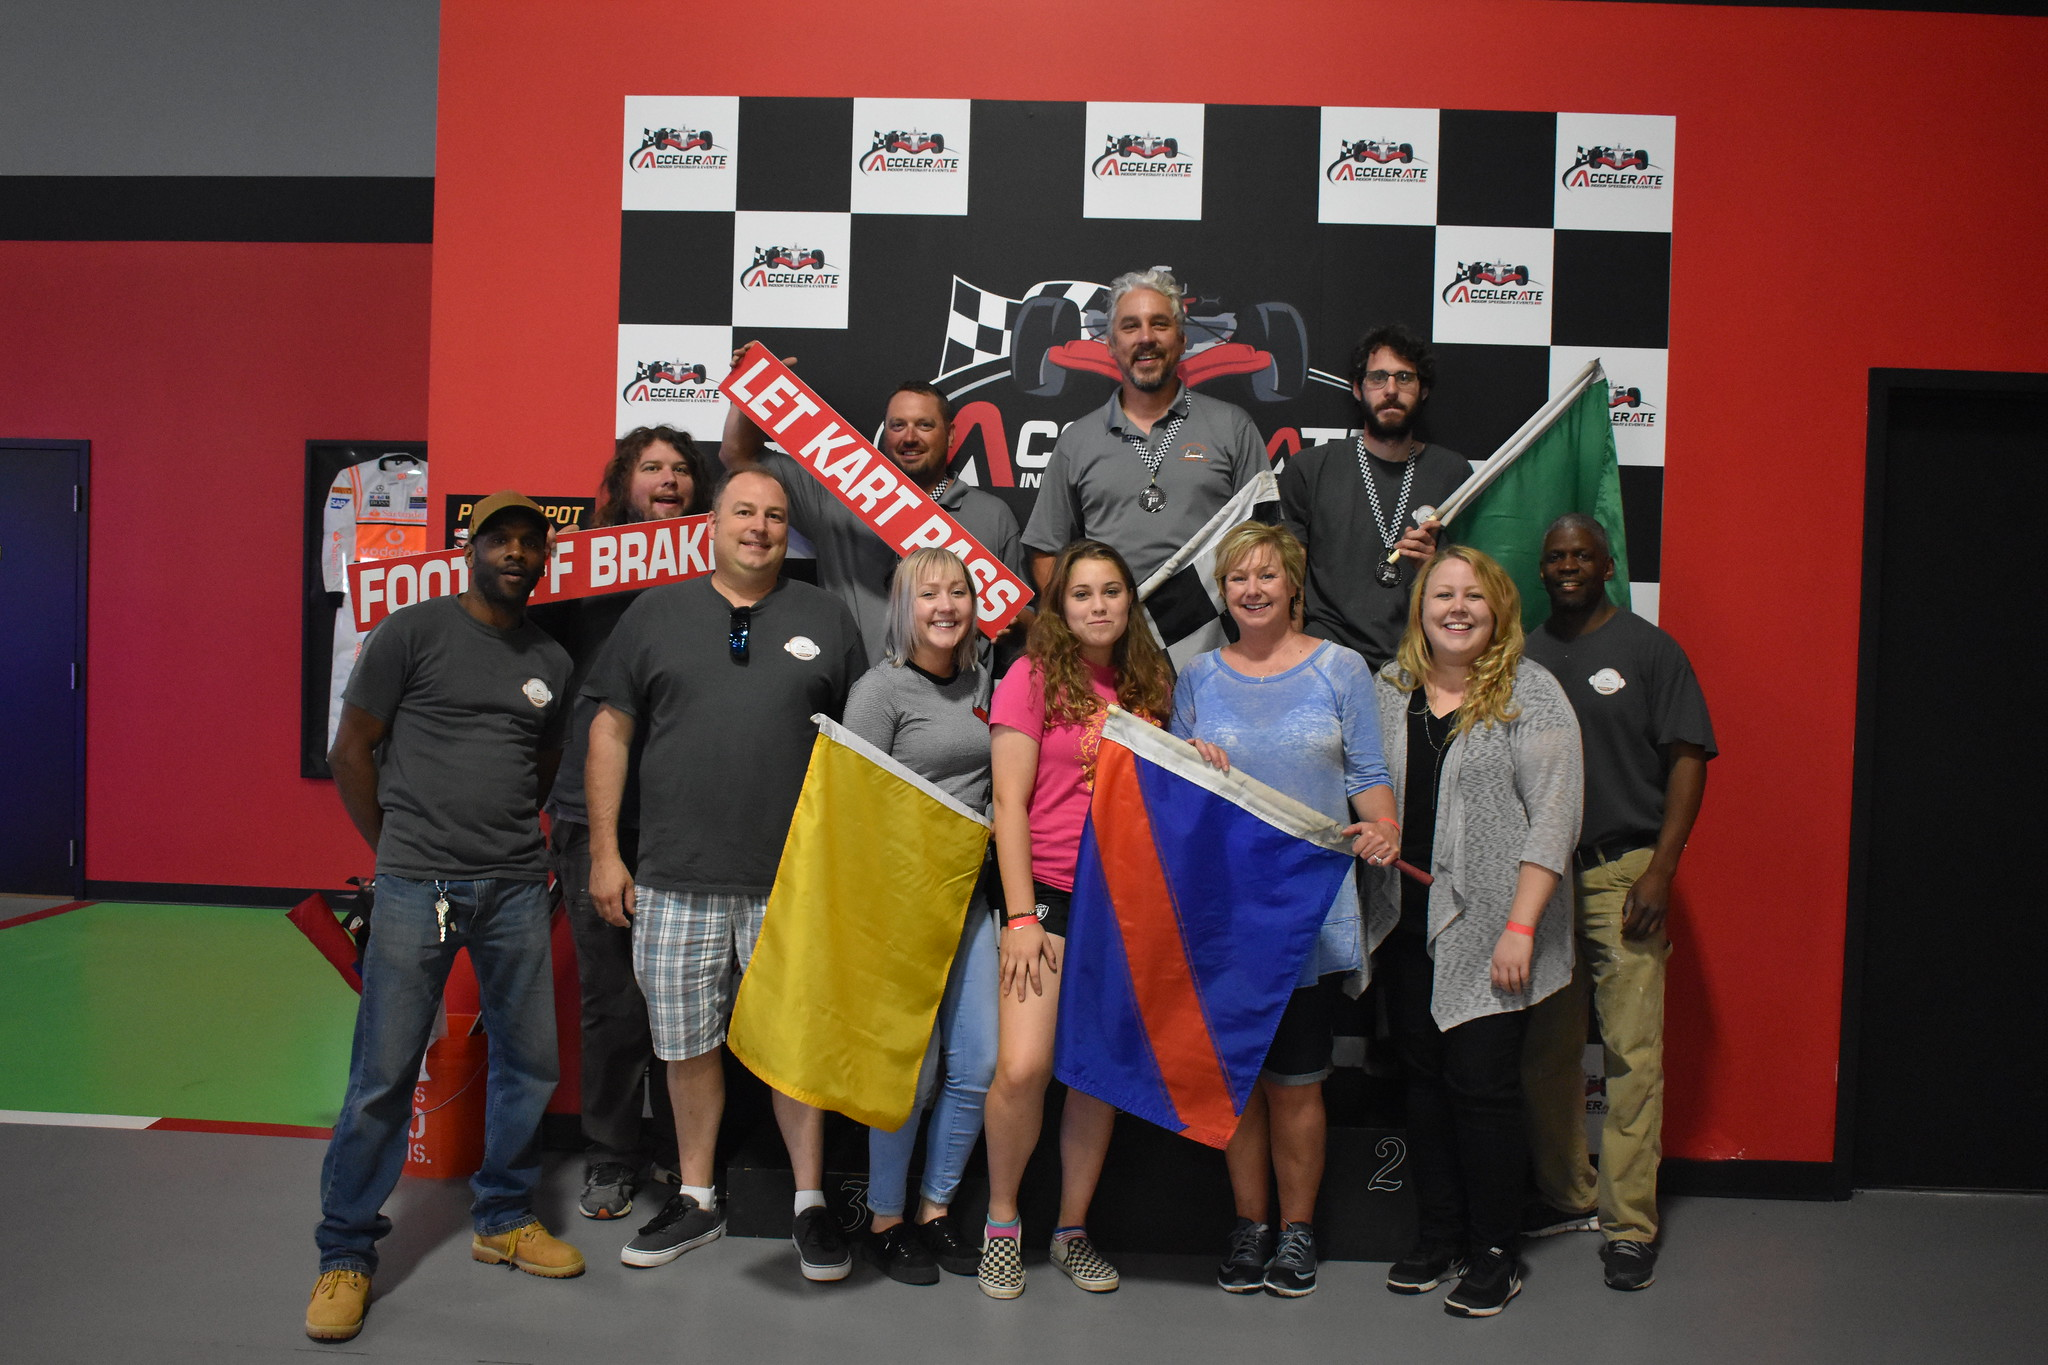 Team bonding event at Accelerate Indoor Speedway